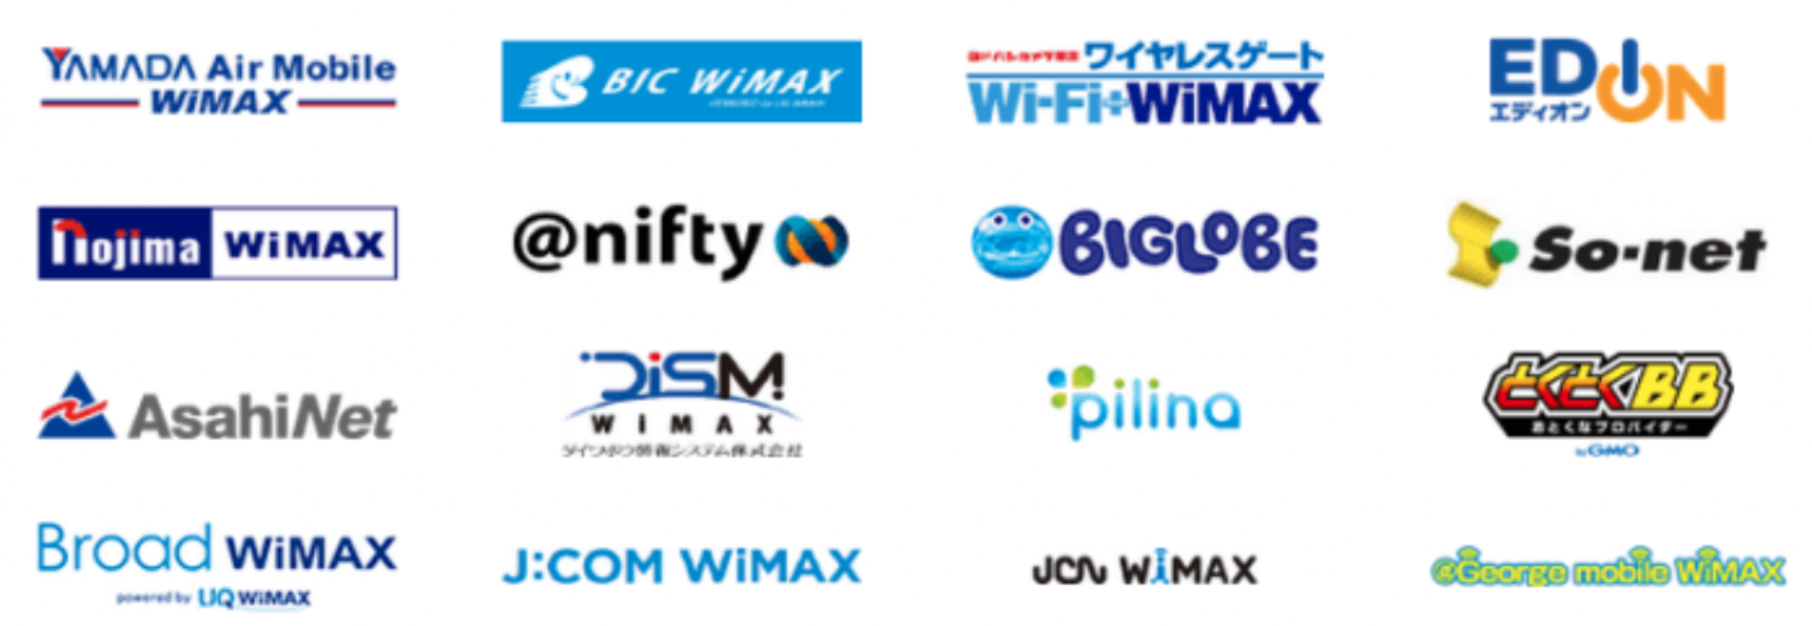 WiMAX プロバイダ種類